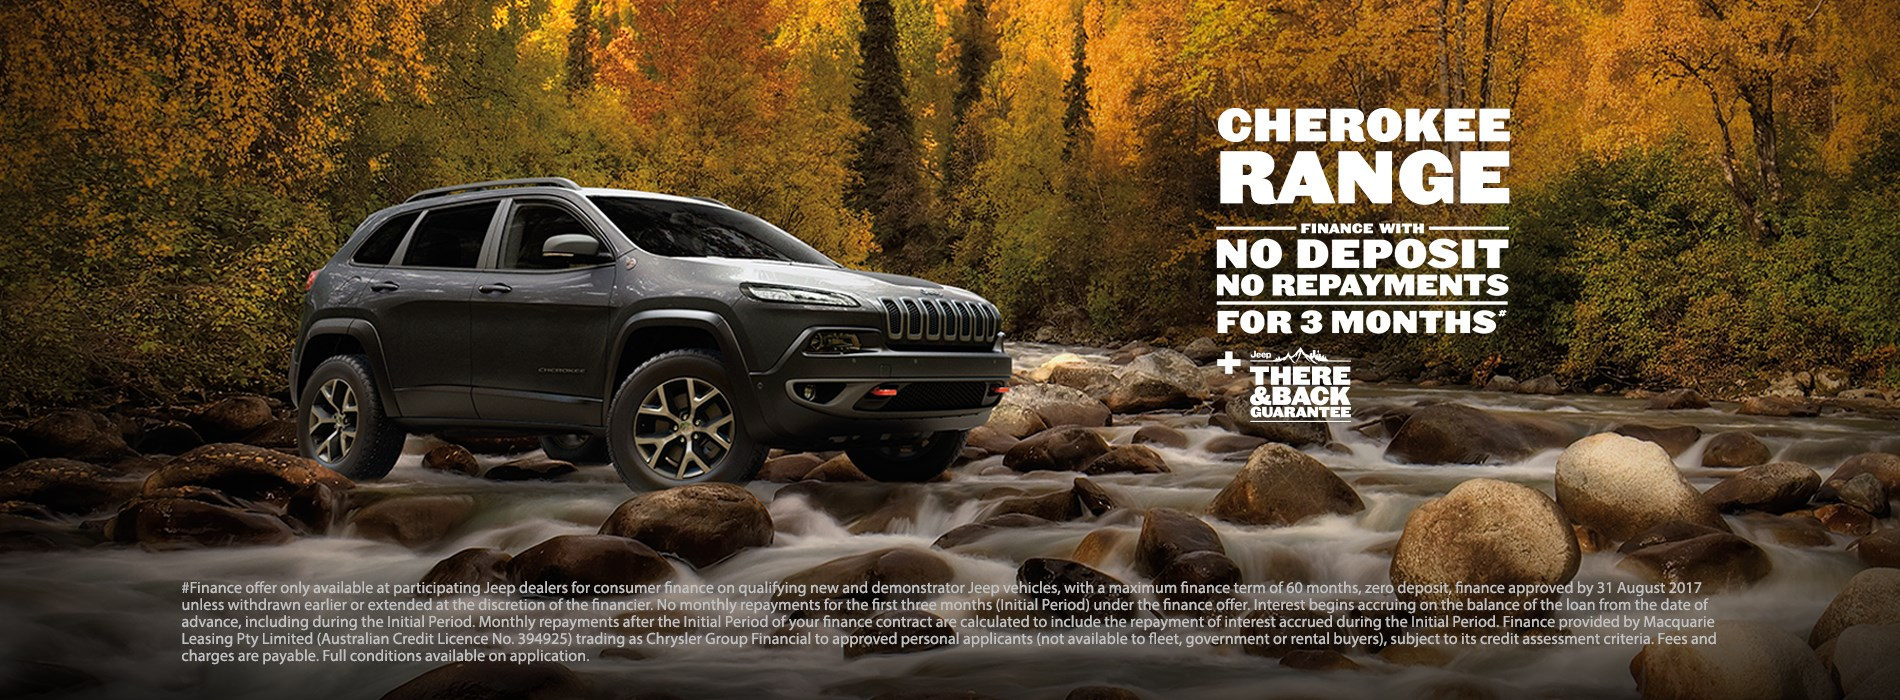 Jeep Cherokee Range No payments for 3 months offer